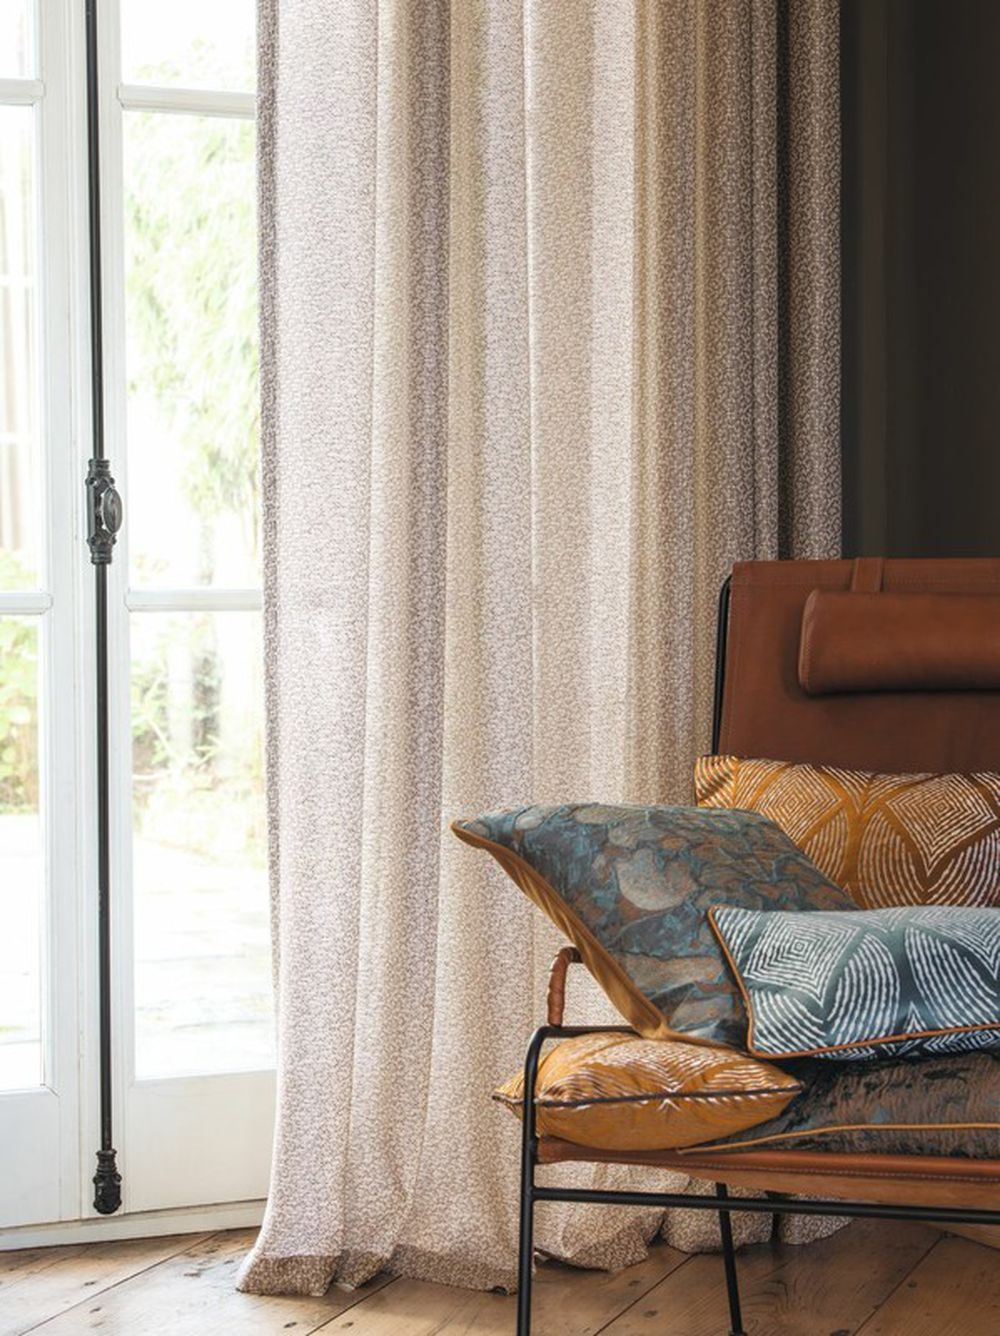 Photo of the fabric Tocade 4083/A4083* 4083 03 25 in situ by Casamance. Use for Sheer Curtains. Style of Plain, Sheer